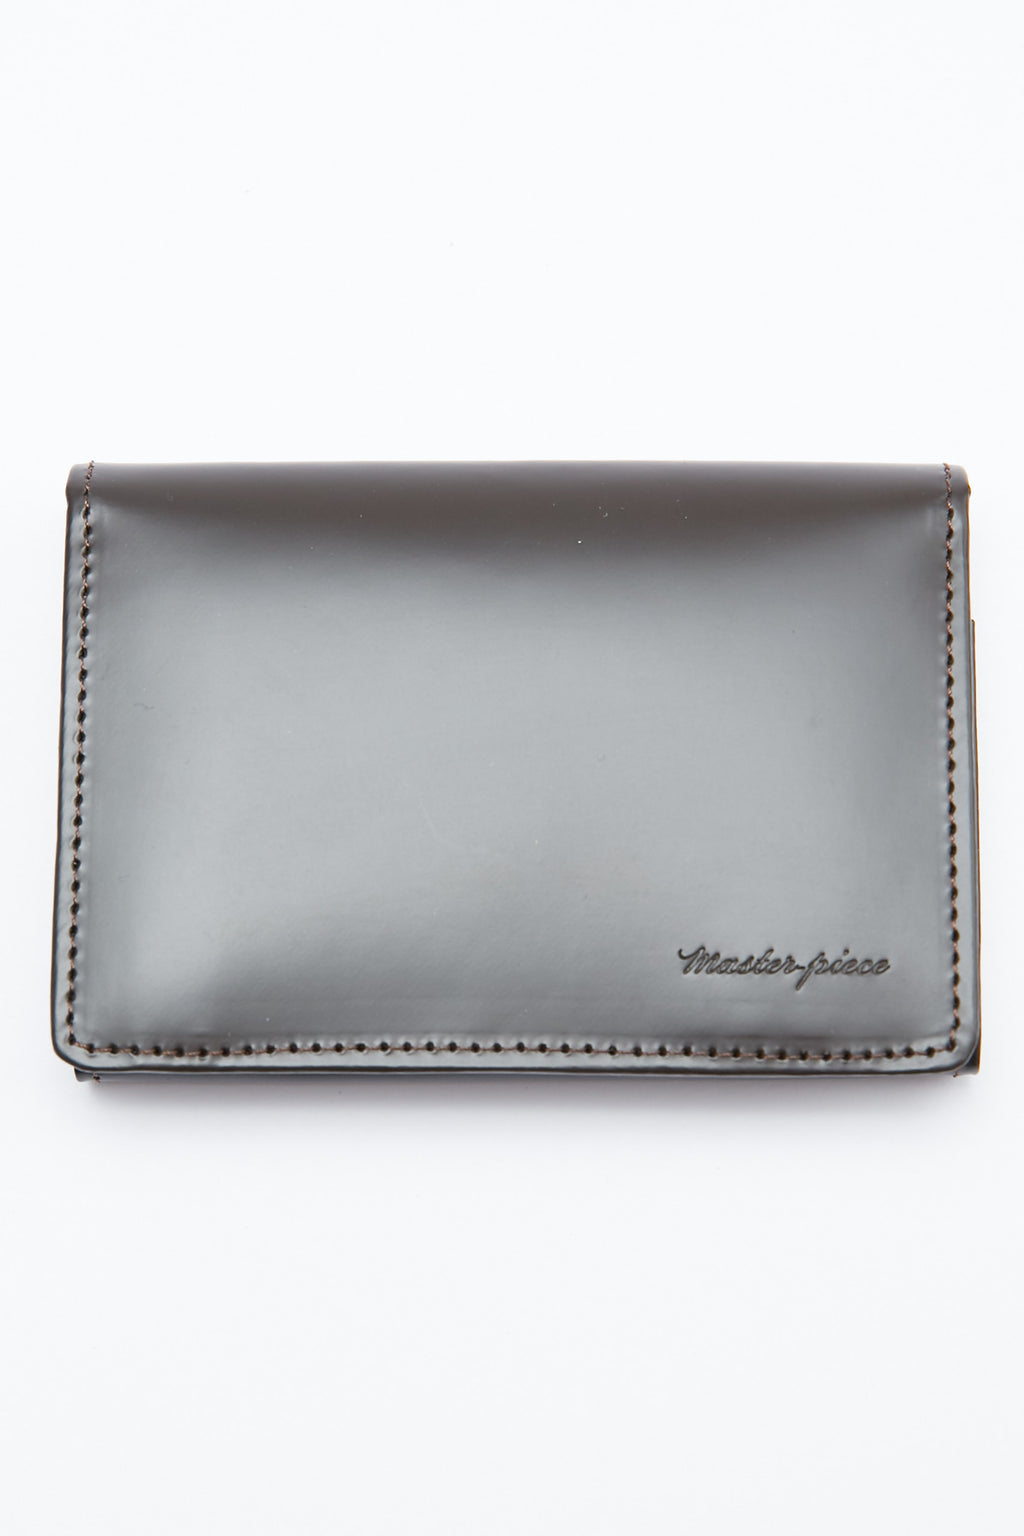 Master-Piece Plain Version 2 Card Holder - Choco Waxed Glass Steer Leather